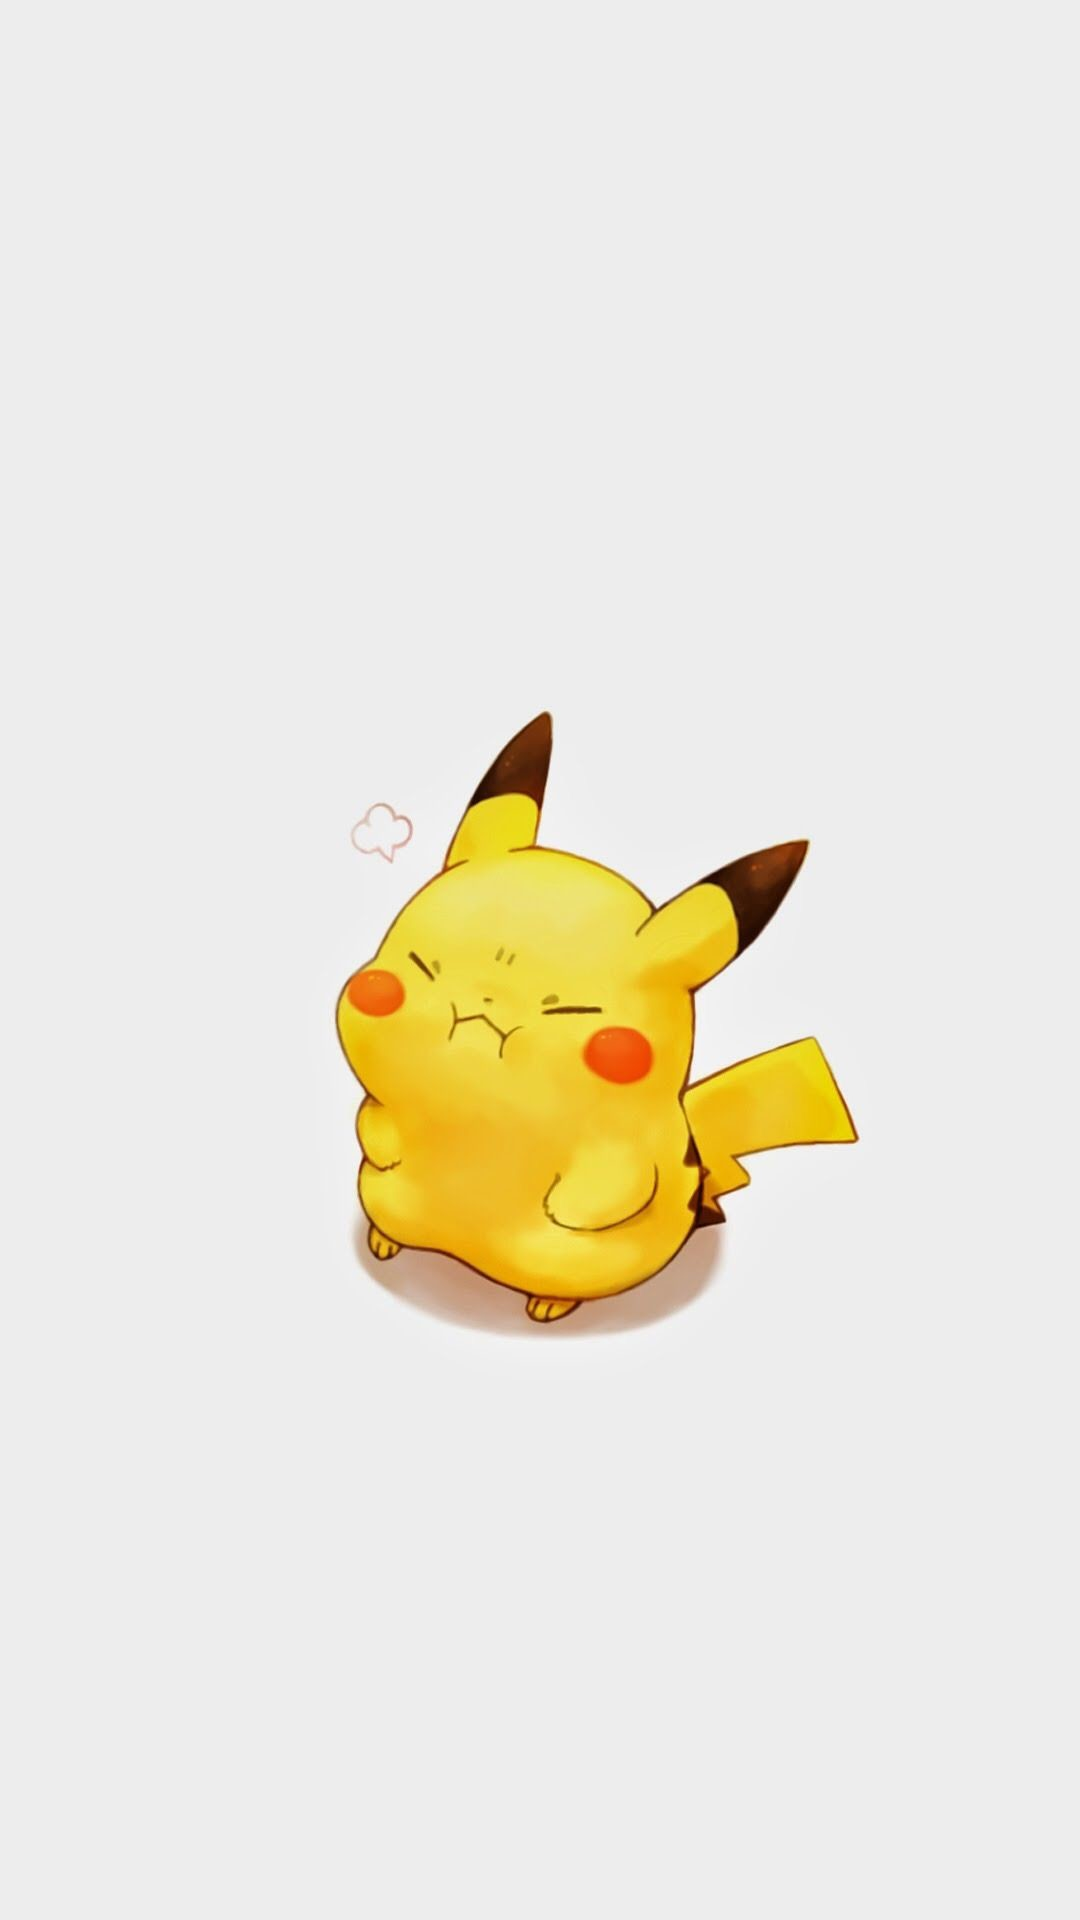 1080x1920 Tap Image For More Funny Cute Pikachu Wallpaper